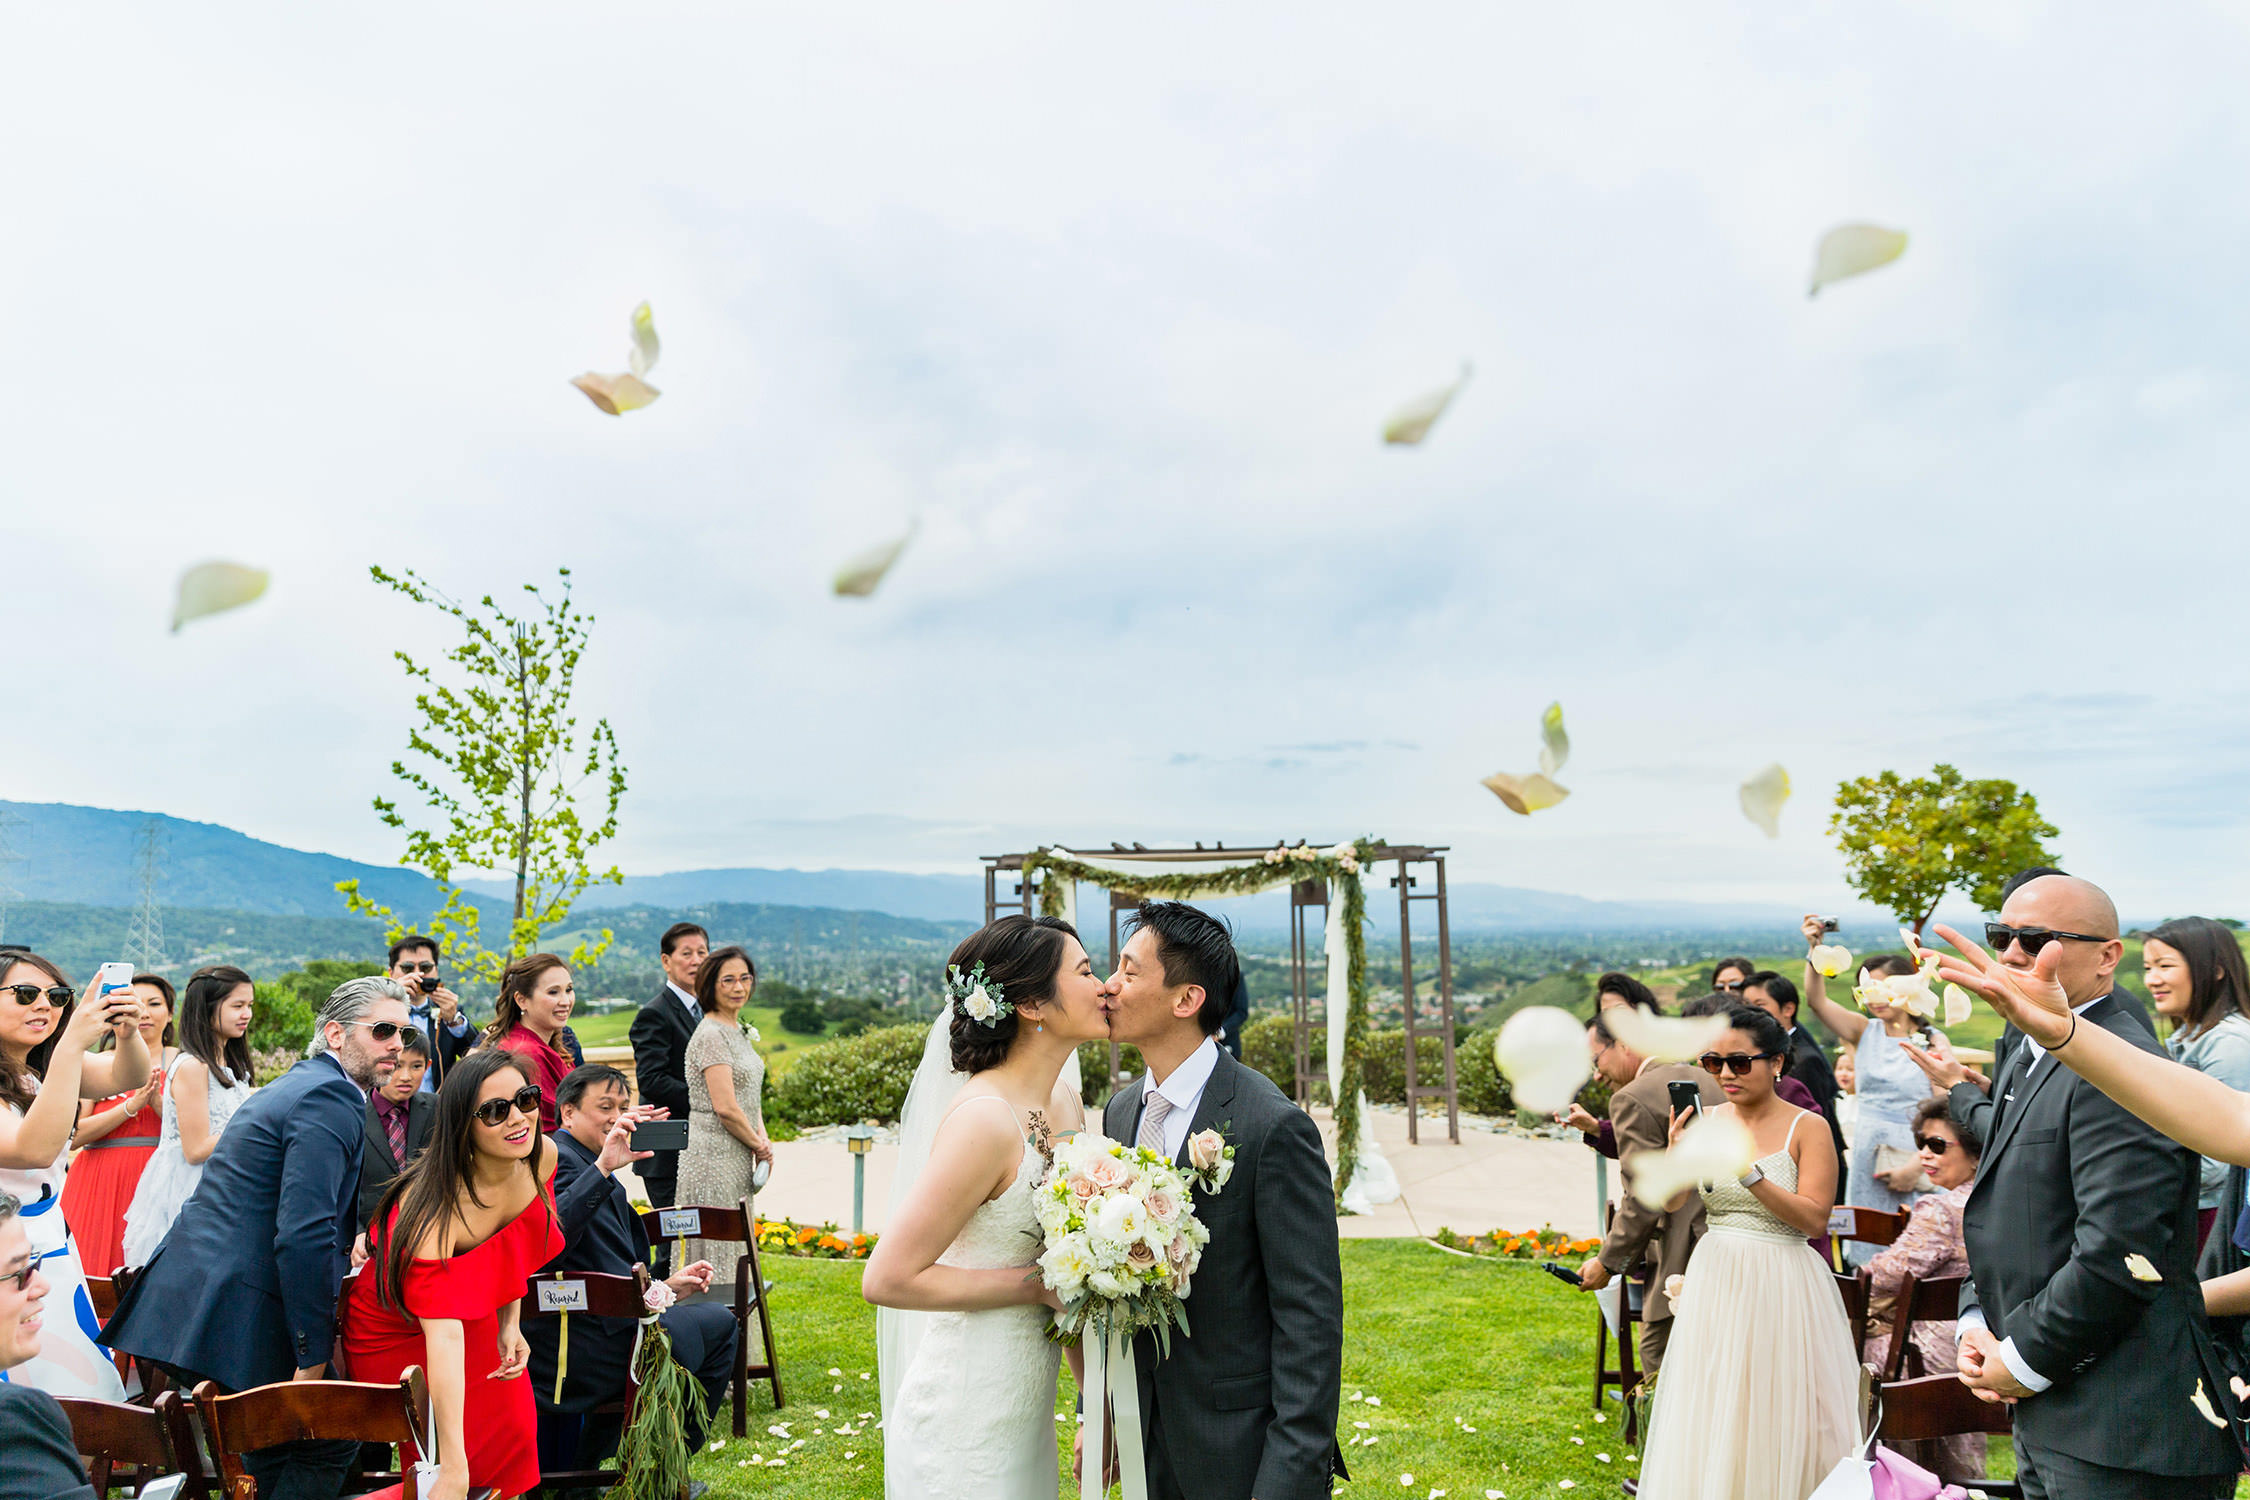 Boulder Ridge Golf Course wedding in Bay Area